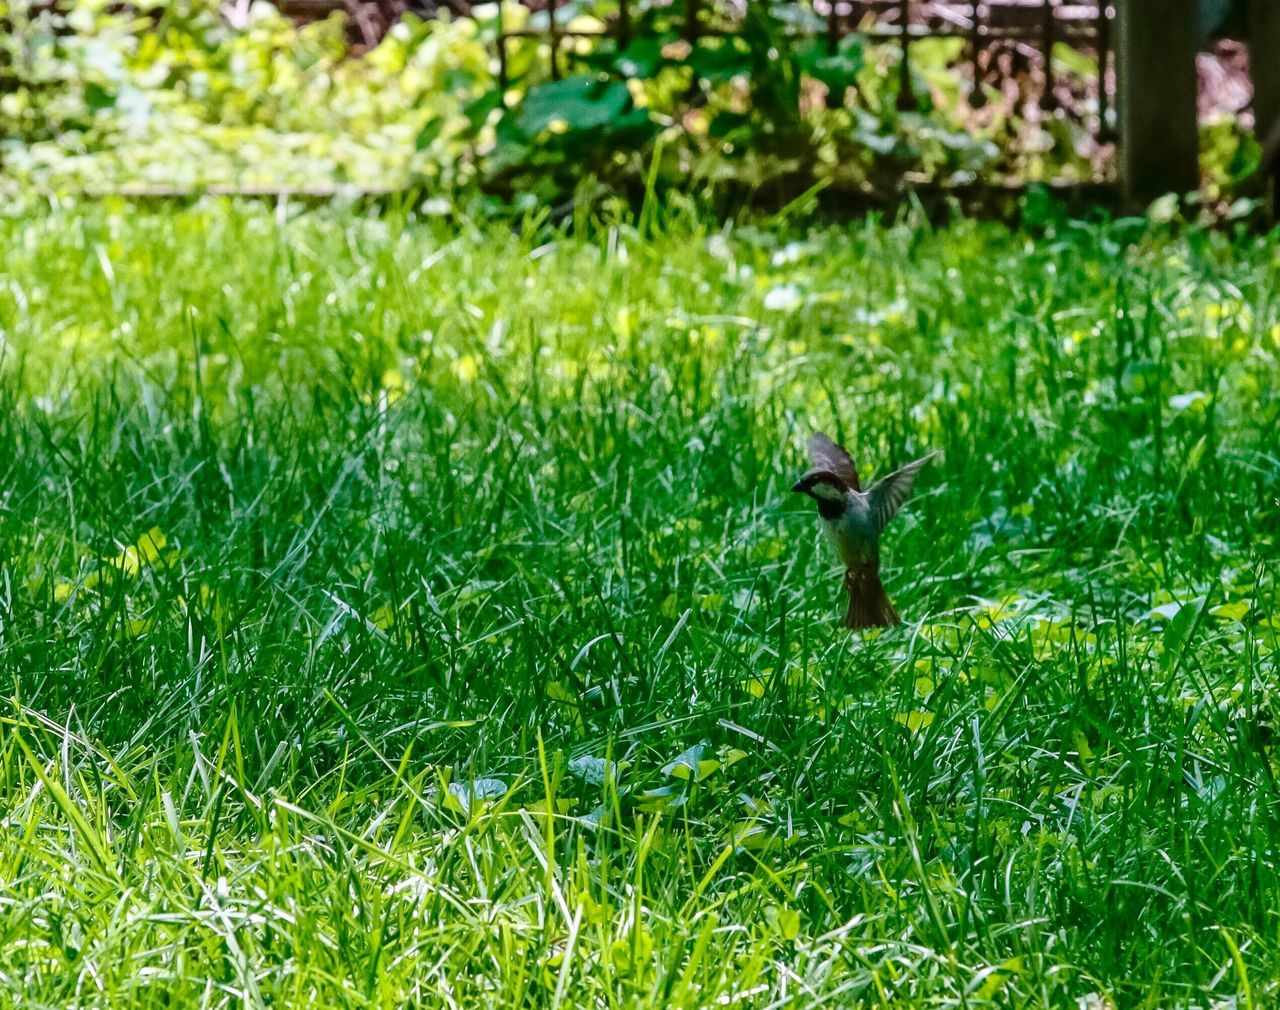 green color, one animal, animal themes, animals in the wild, grass, nature, animal wildlife, bird, squirrel, wildlife, day, outdoors, growth, no people, field, sparrow, beauty in nature, close-up, mammal